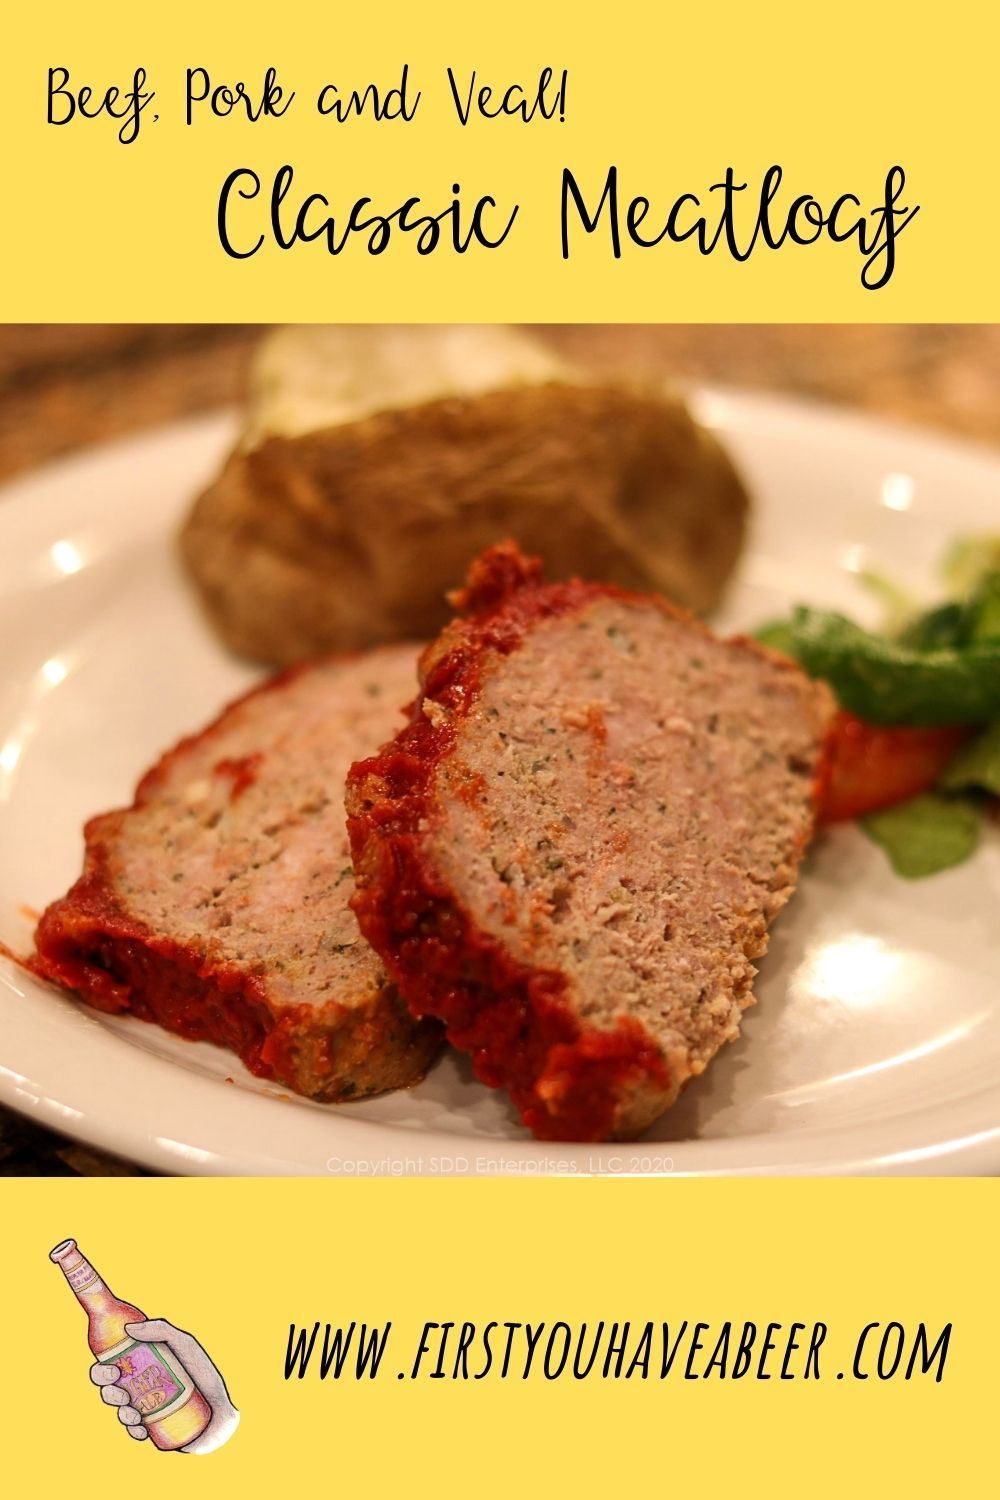 How To Make A Classic Meatloaf Recipe In 2021 Meatloaf Classic Meatloaf Classic Meatloaf Recipe